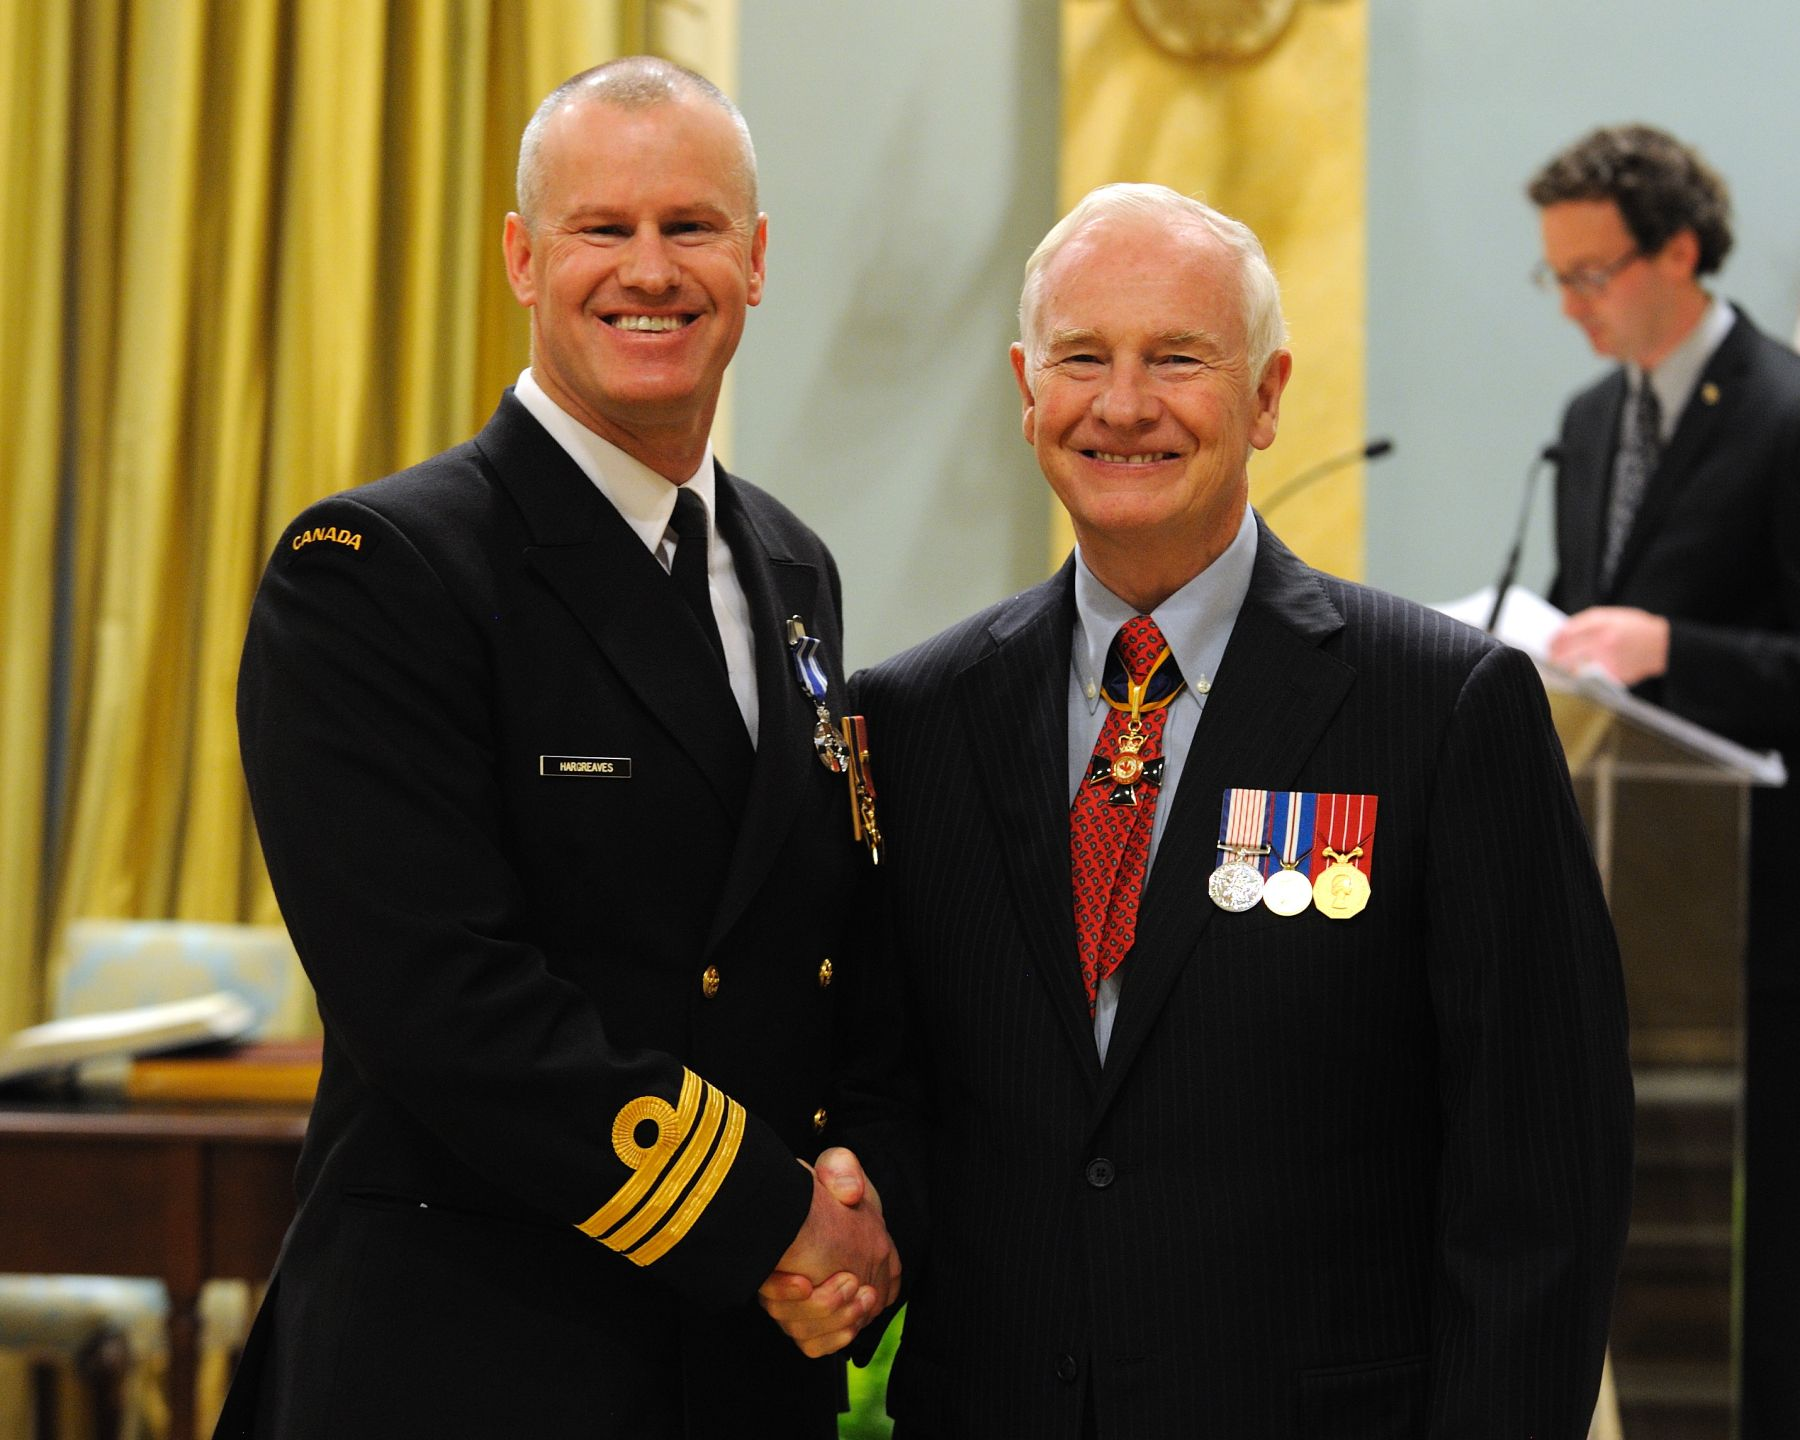 Commander Christopher John Hargreaves, O.M.M., M.S.M., C.D., received the Meritorious Service Medal (Military Division) from His Excellency. Since his appointment in 2008 as commanding officer of Canadian Forces Fleet School Esquimalt, Commander Hargreaves' inspirational leadership, detailed analytical skills, dedication and infectious motivation have been the driving force behind initiatives to improve naval courses. His actions were instrumental in enhancing the sailors' quality of life and reducing time away from home and units. His commitment and professionalism have had a significant impact on the individual training requirements for naval force employment, generation and development.